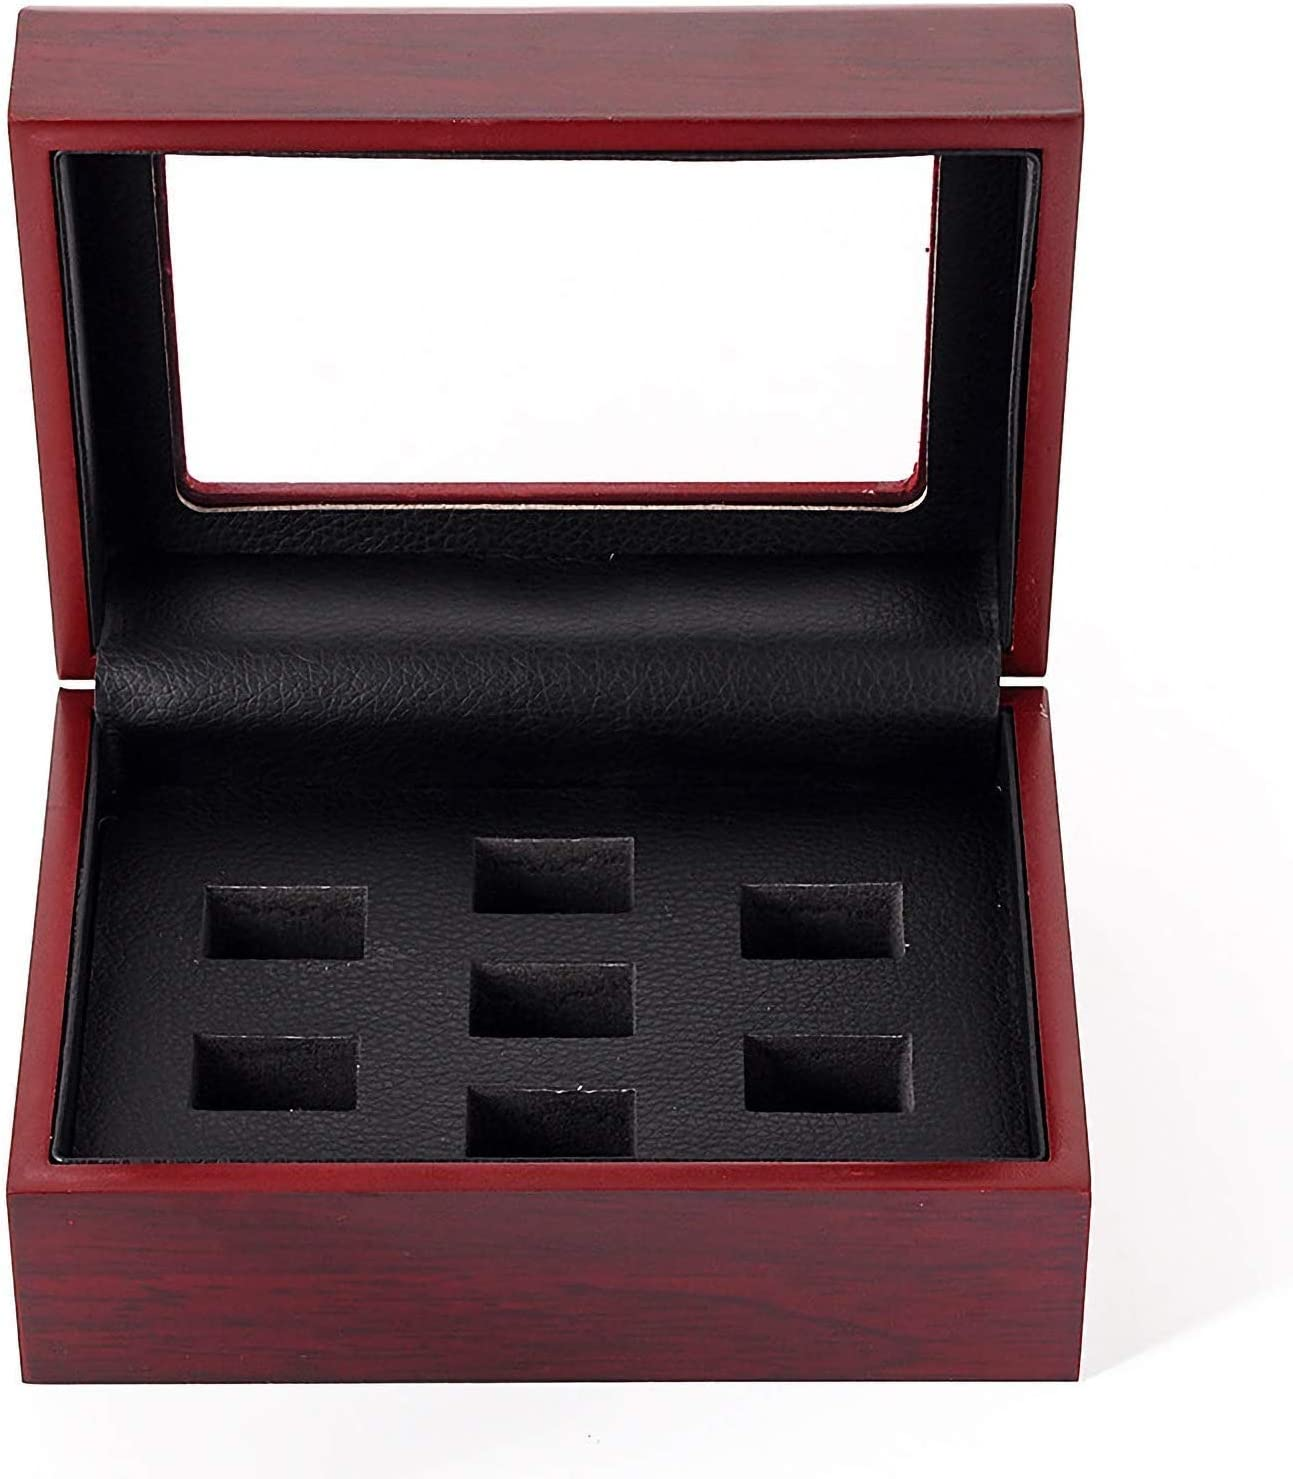 RECHIATO Championship Rings Display Case Wooden Display Ring Box Sports Rings Display Case